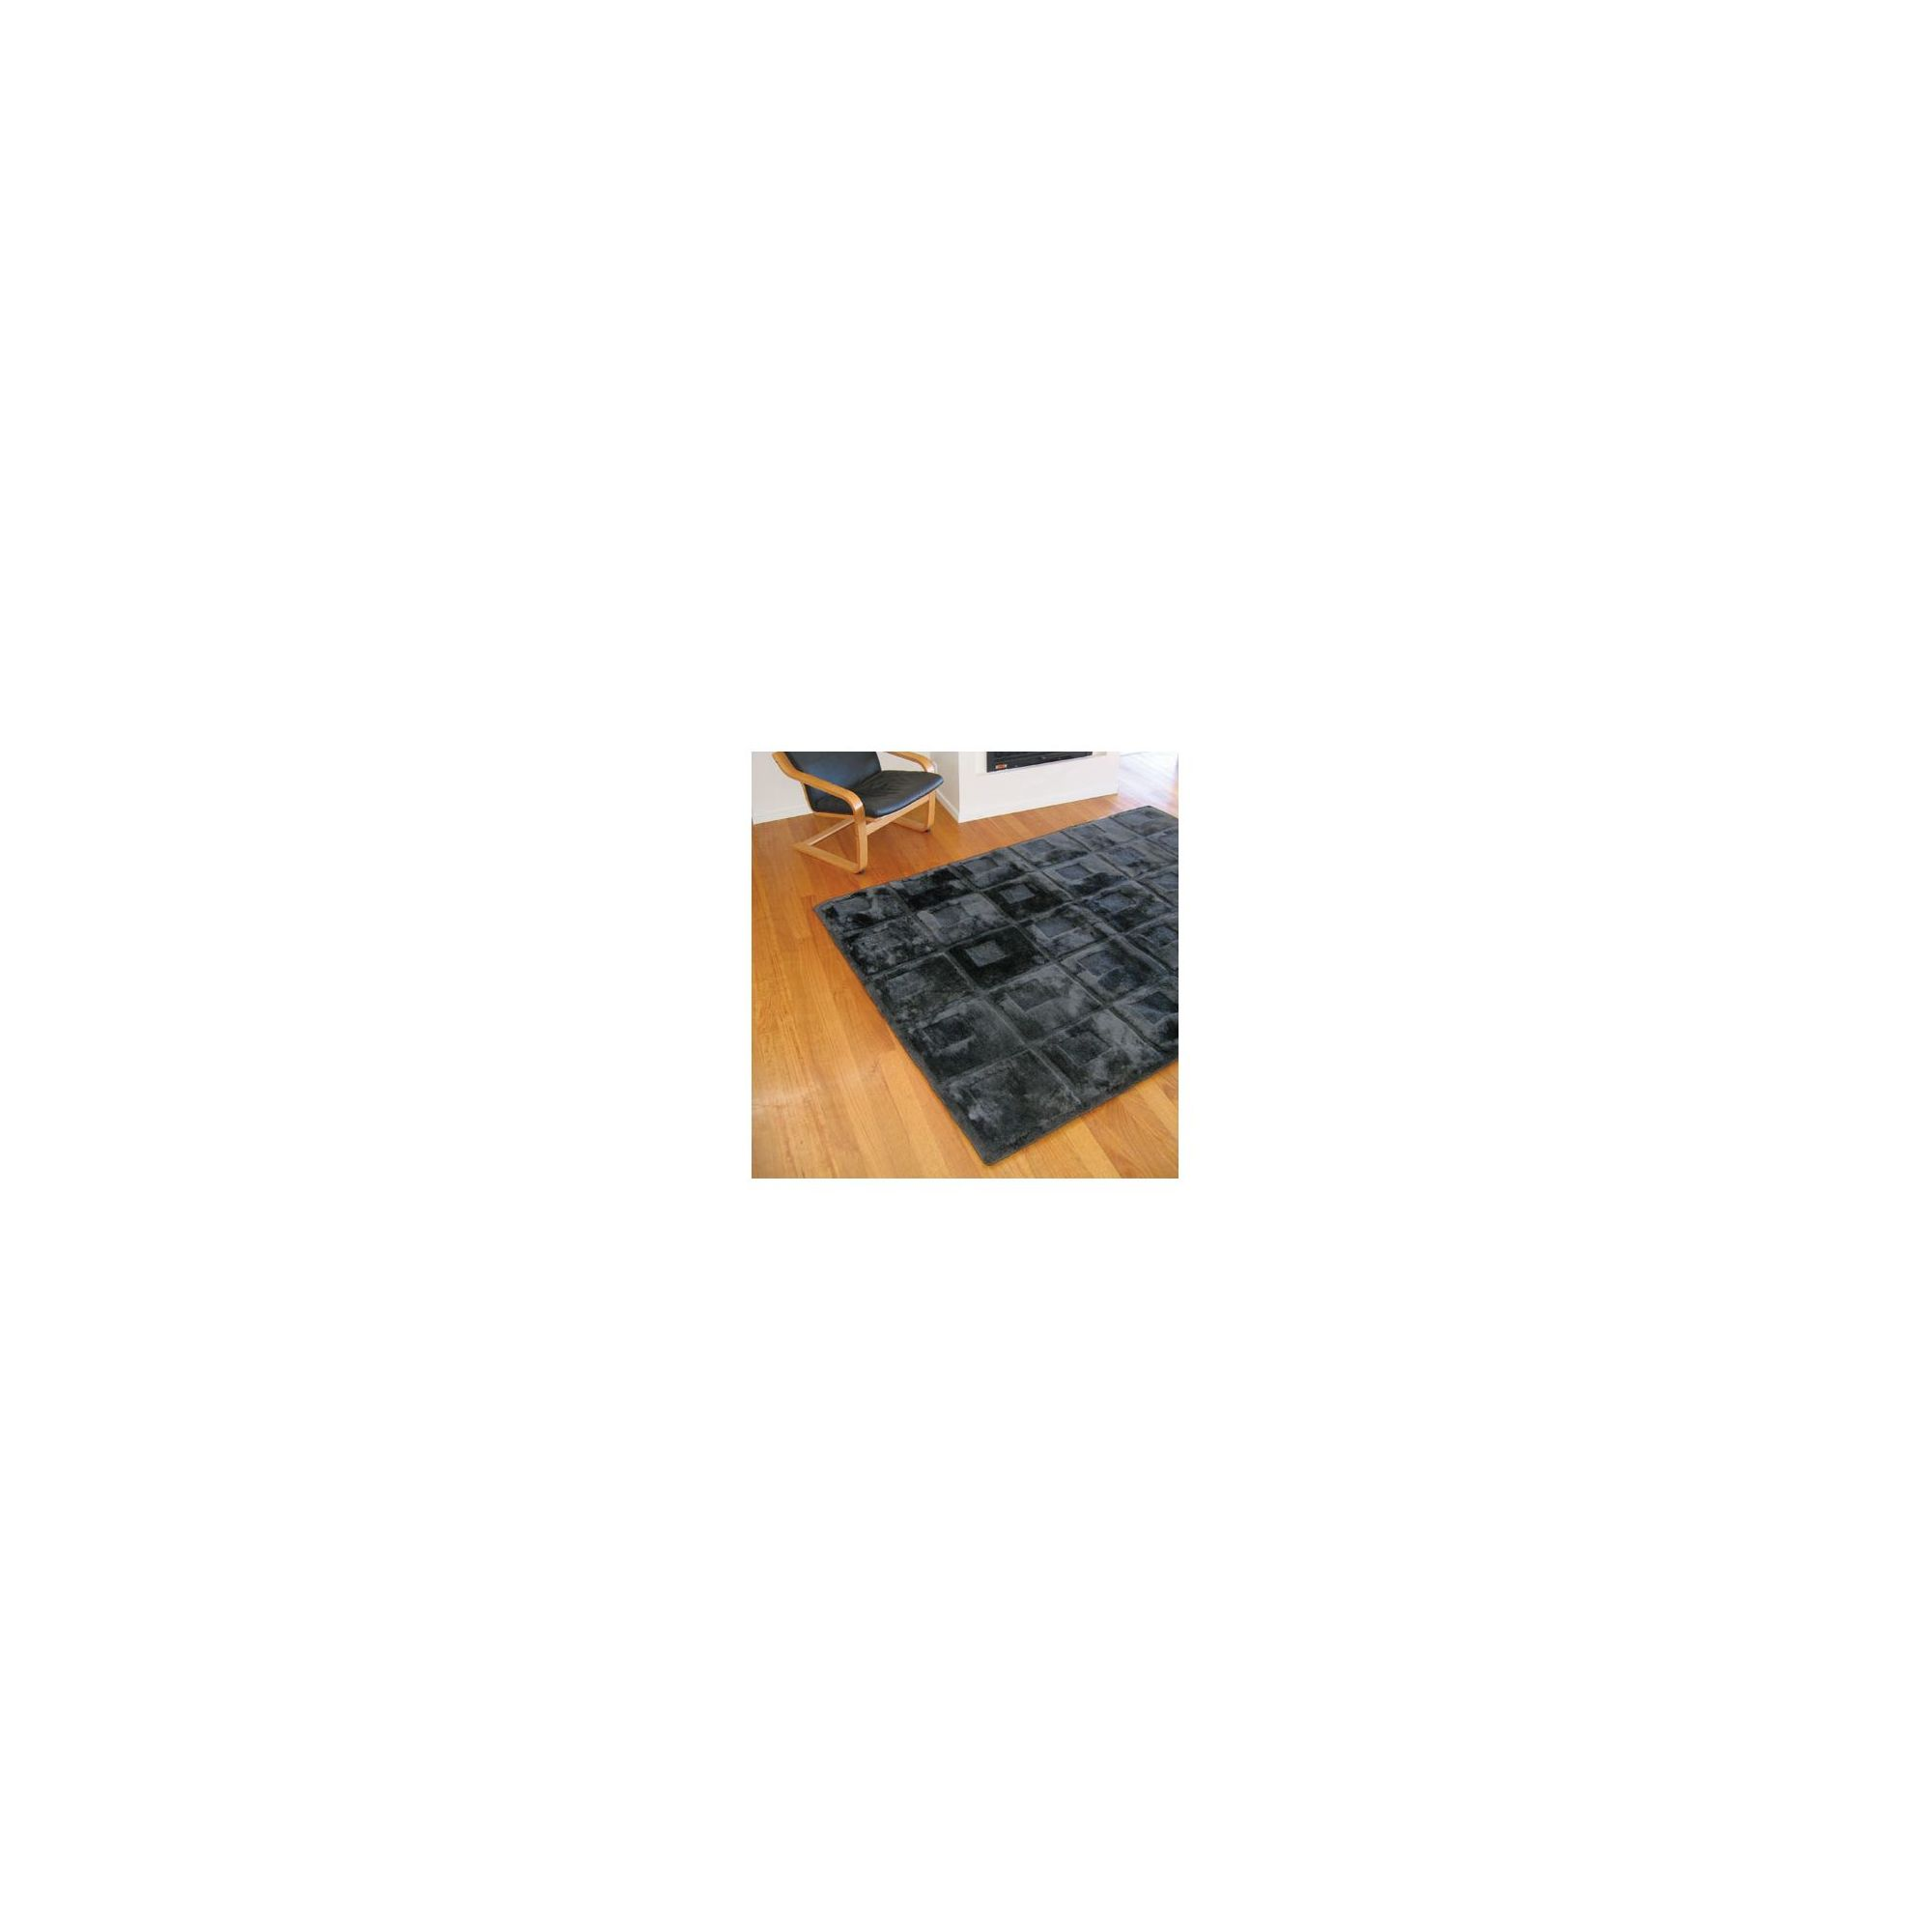 Bowron Sheepskin Shortwool Design Orbit Black Rug - 240cm H x 65cm W x 1cm D at Tesco Direct